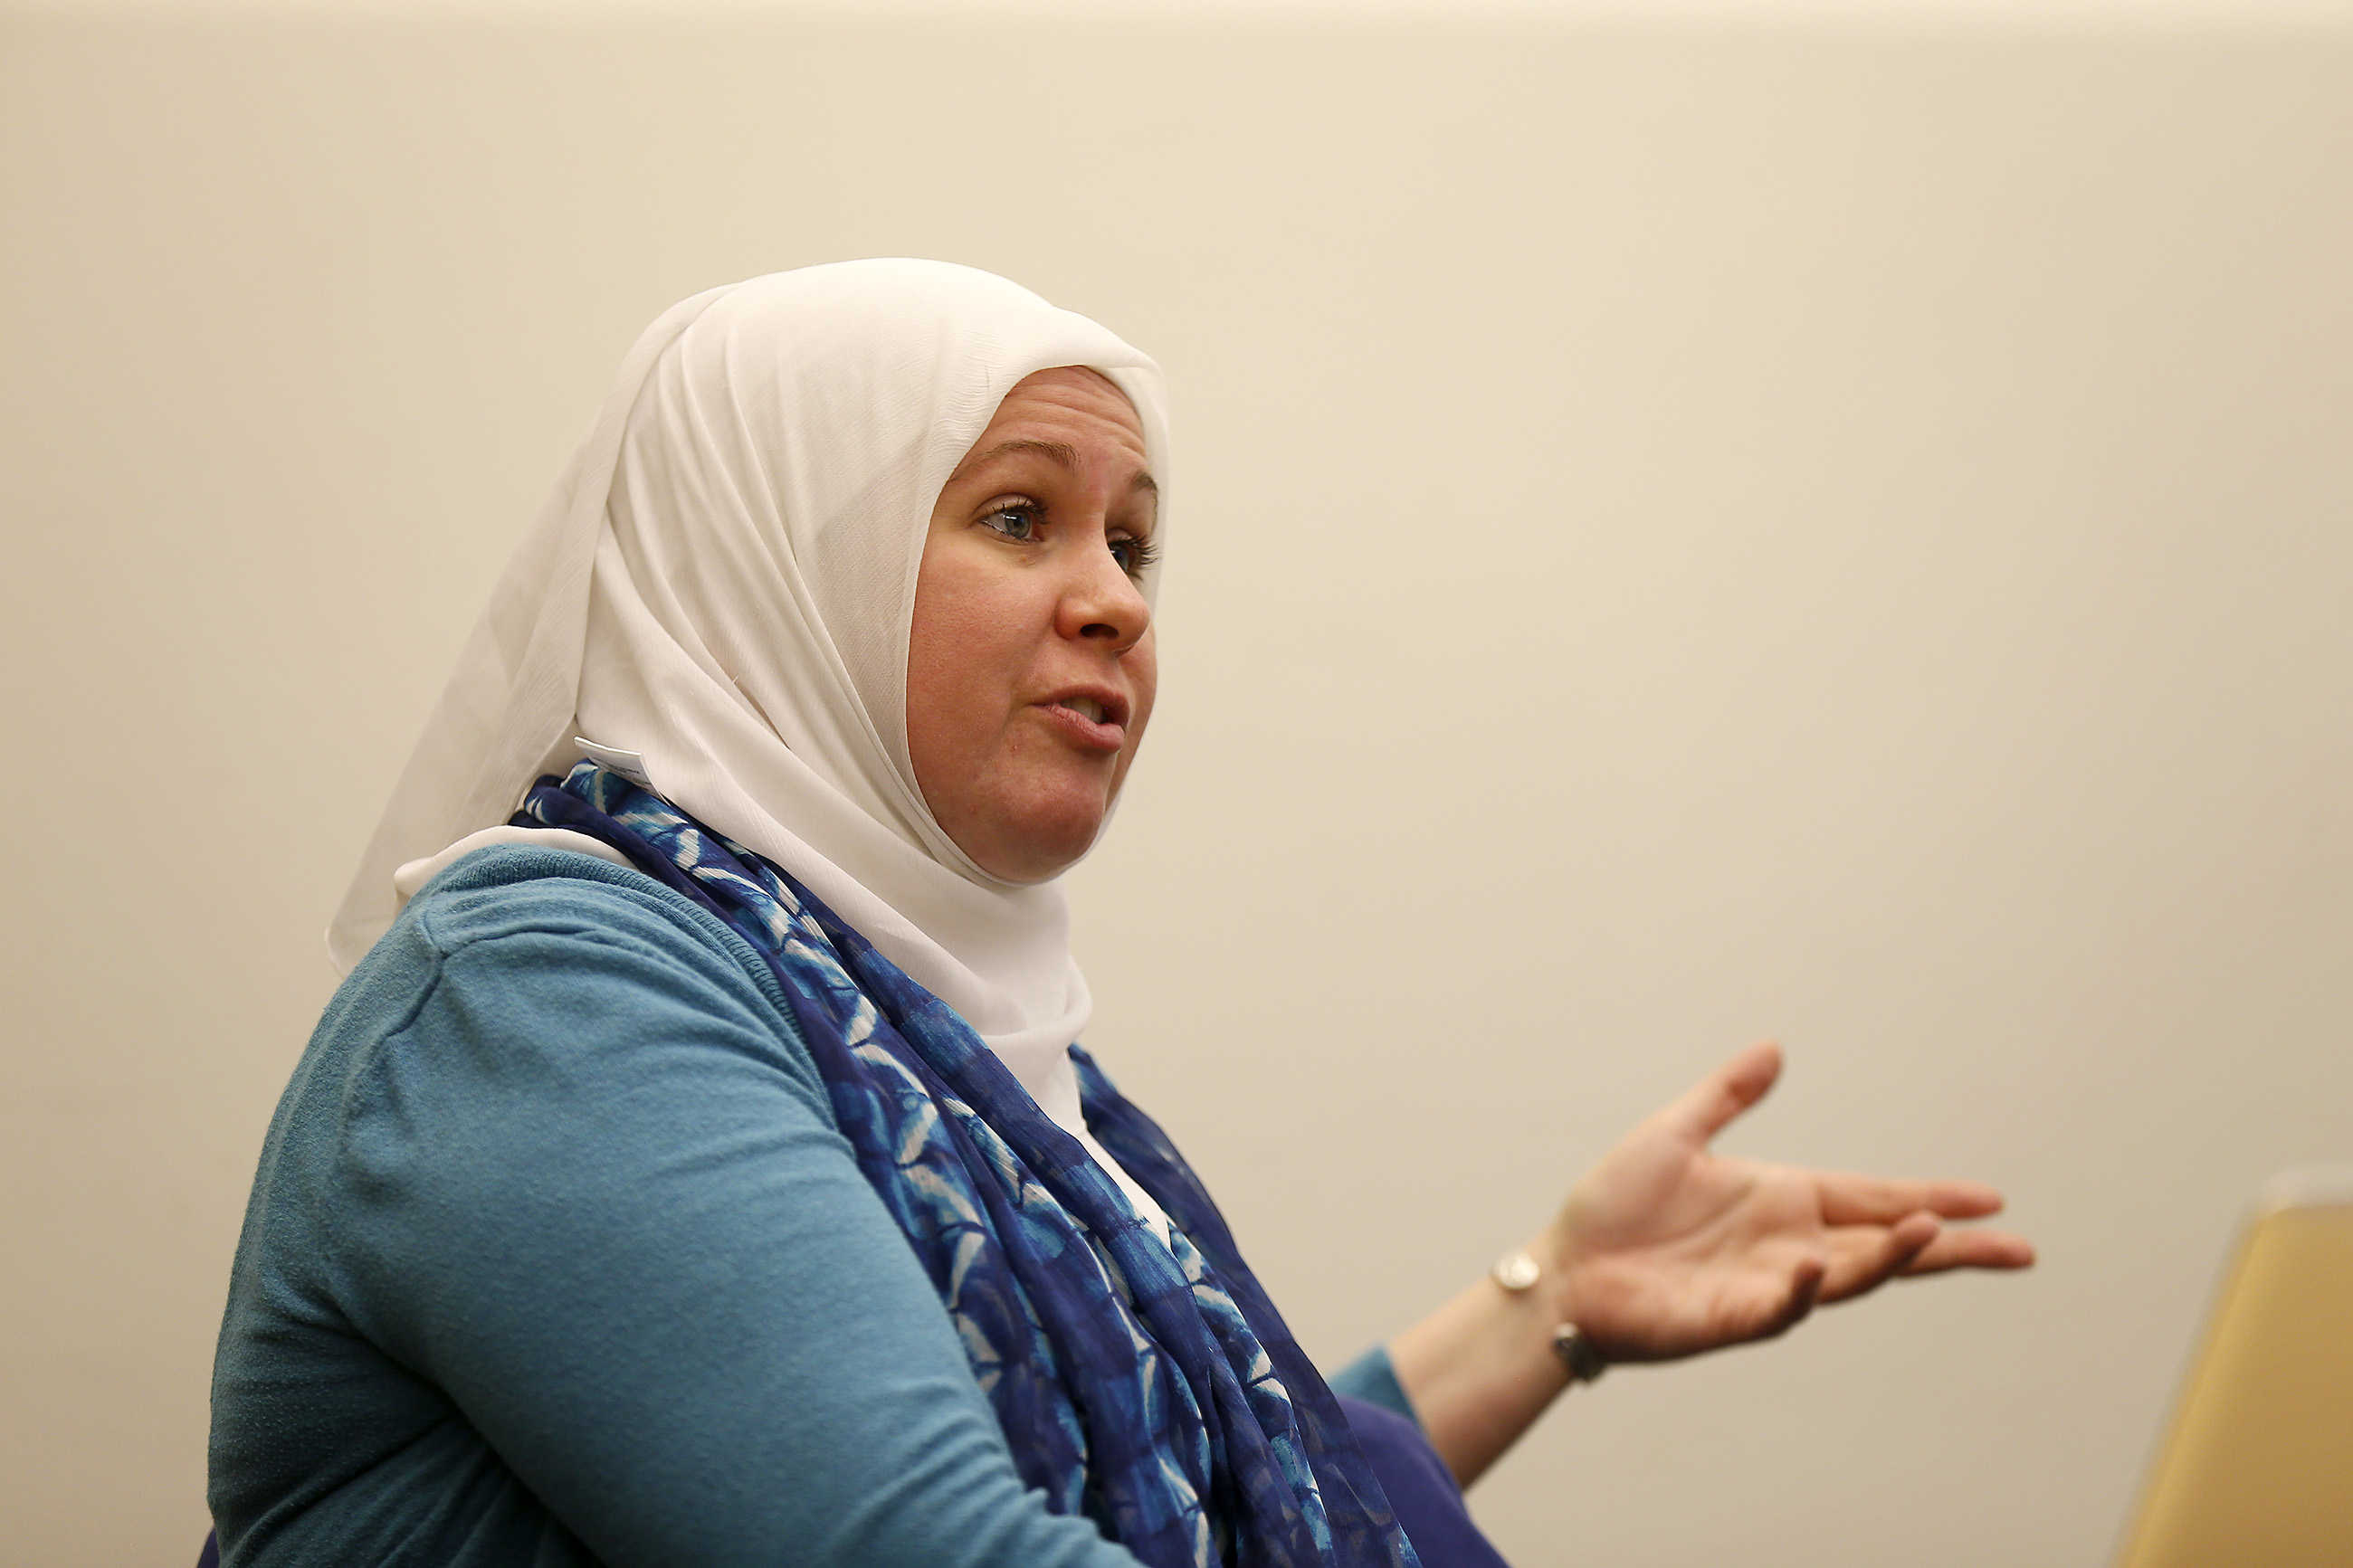 Patty Anton, a chaplain with the Muslim Students Association, talks with Emile Bruneau about videos that might reduce negative views of Muslims.